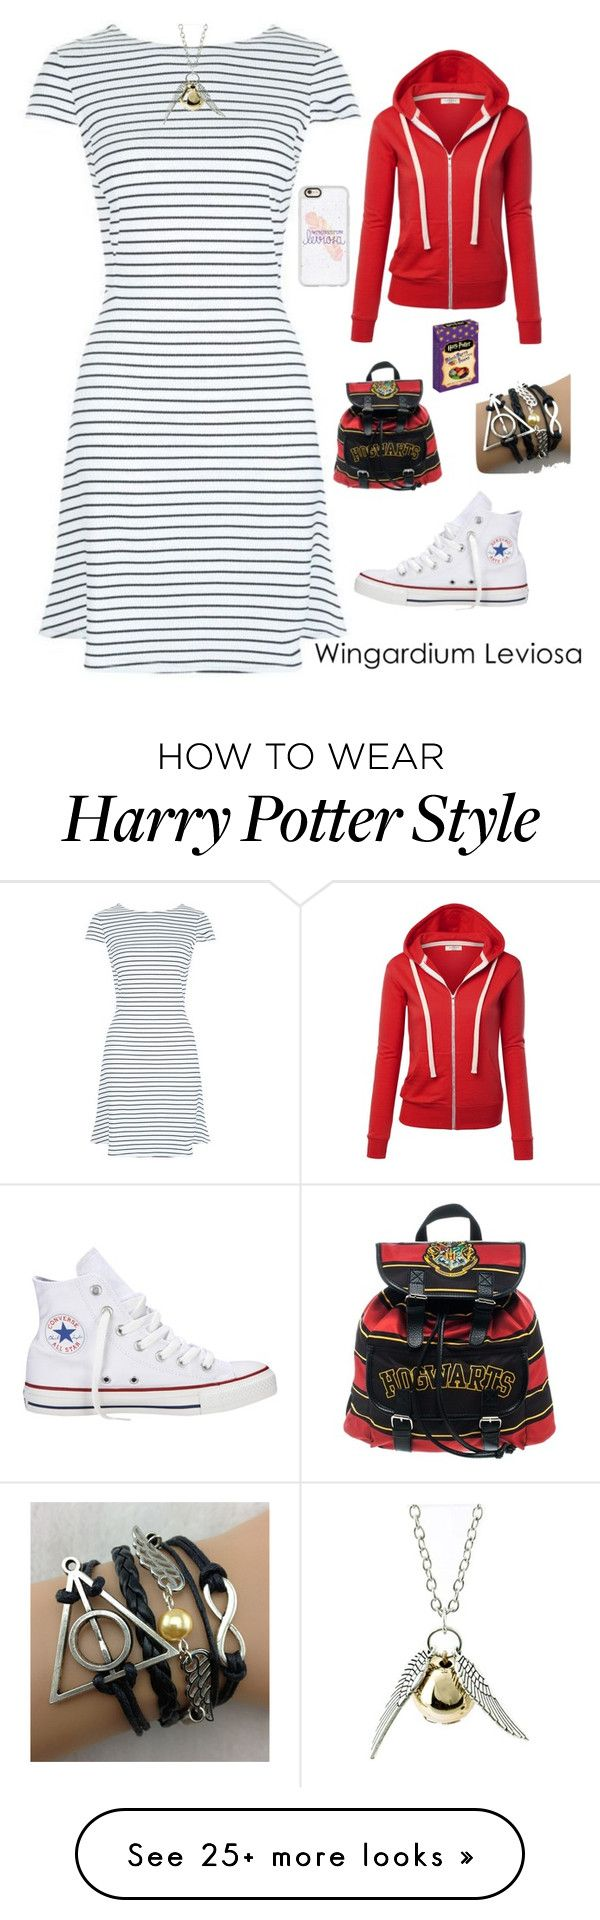 """""""Wingardium Leviosa"""" by sarahlynnmurphy on Polyvore featuring Converse, Quiksilver and Casetify"""